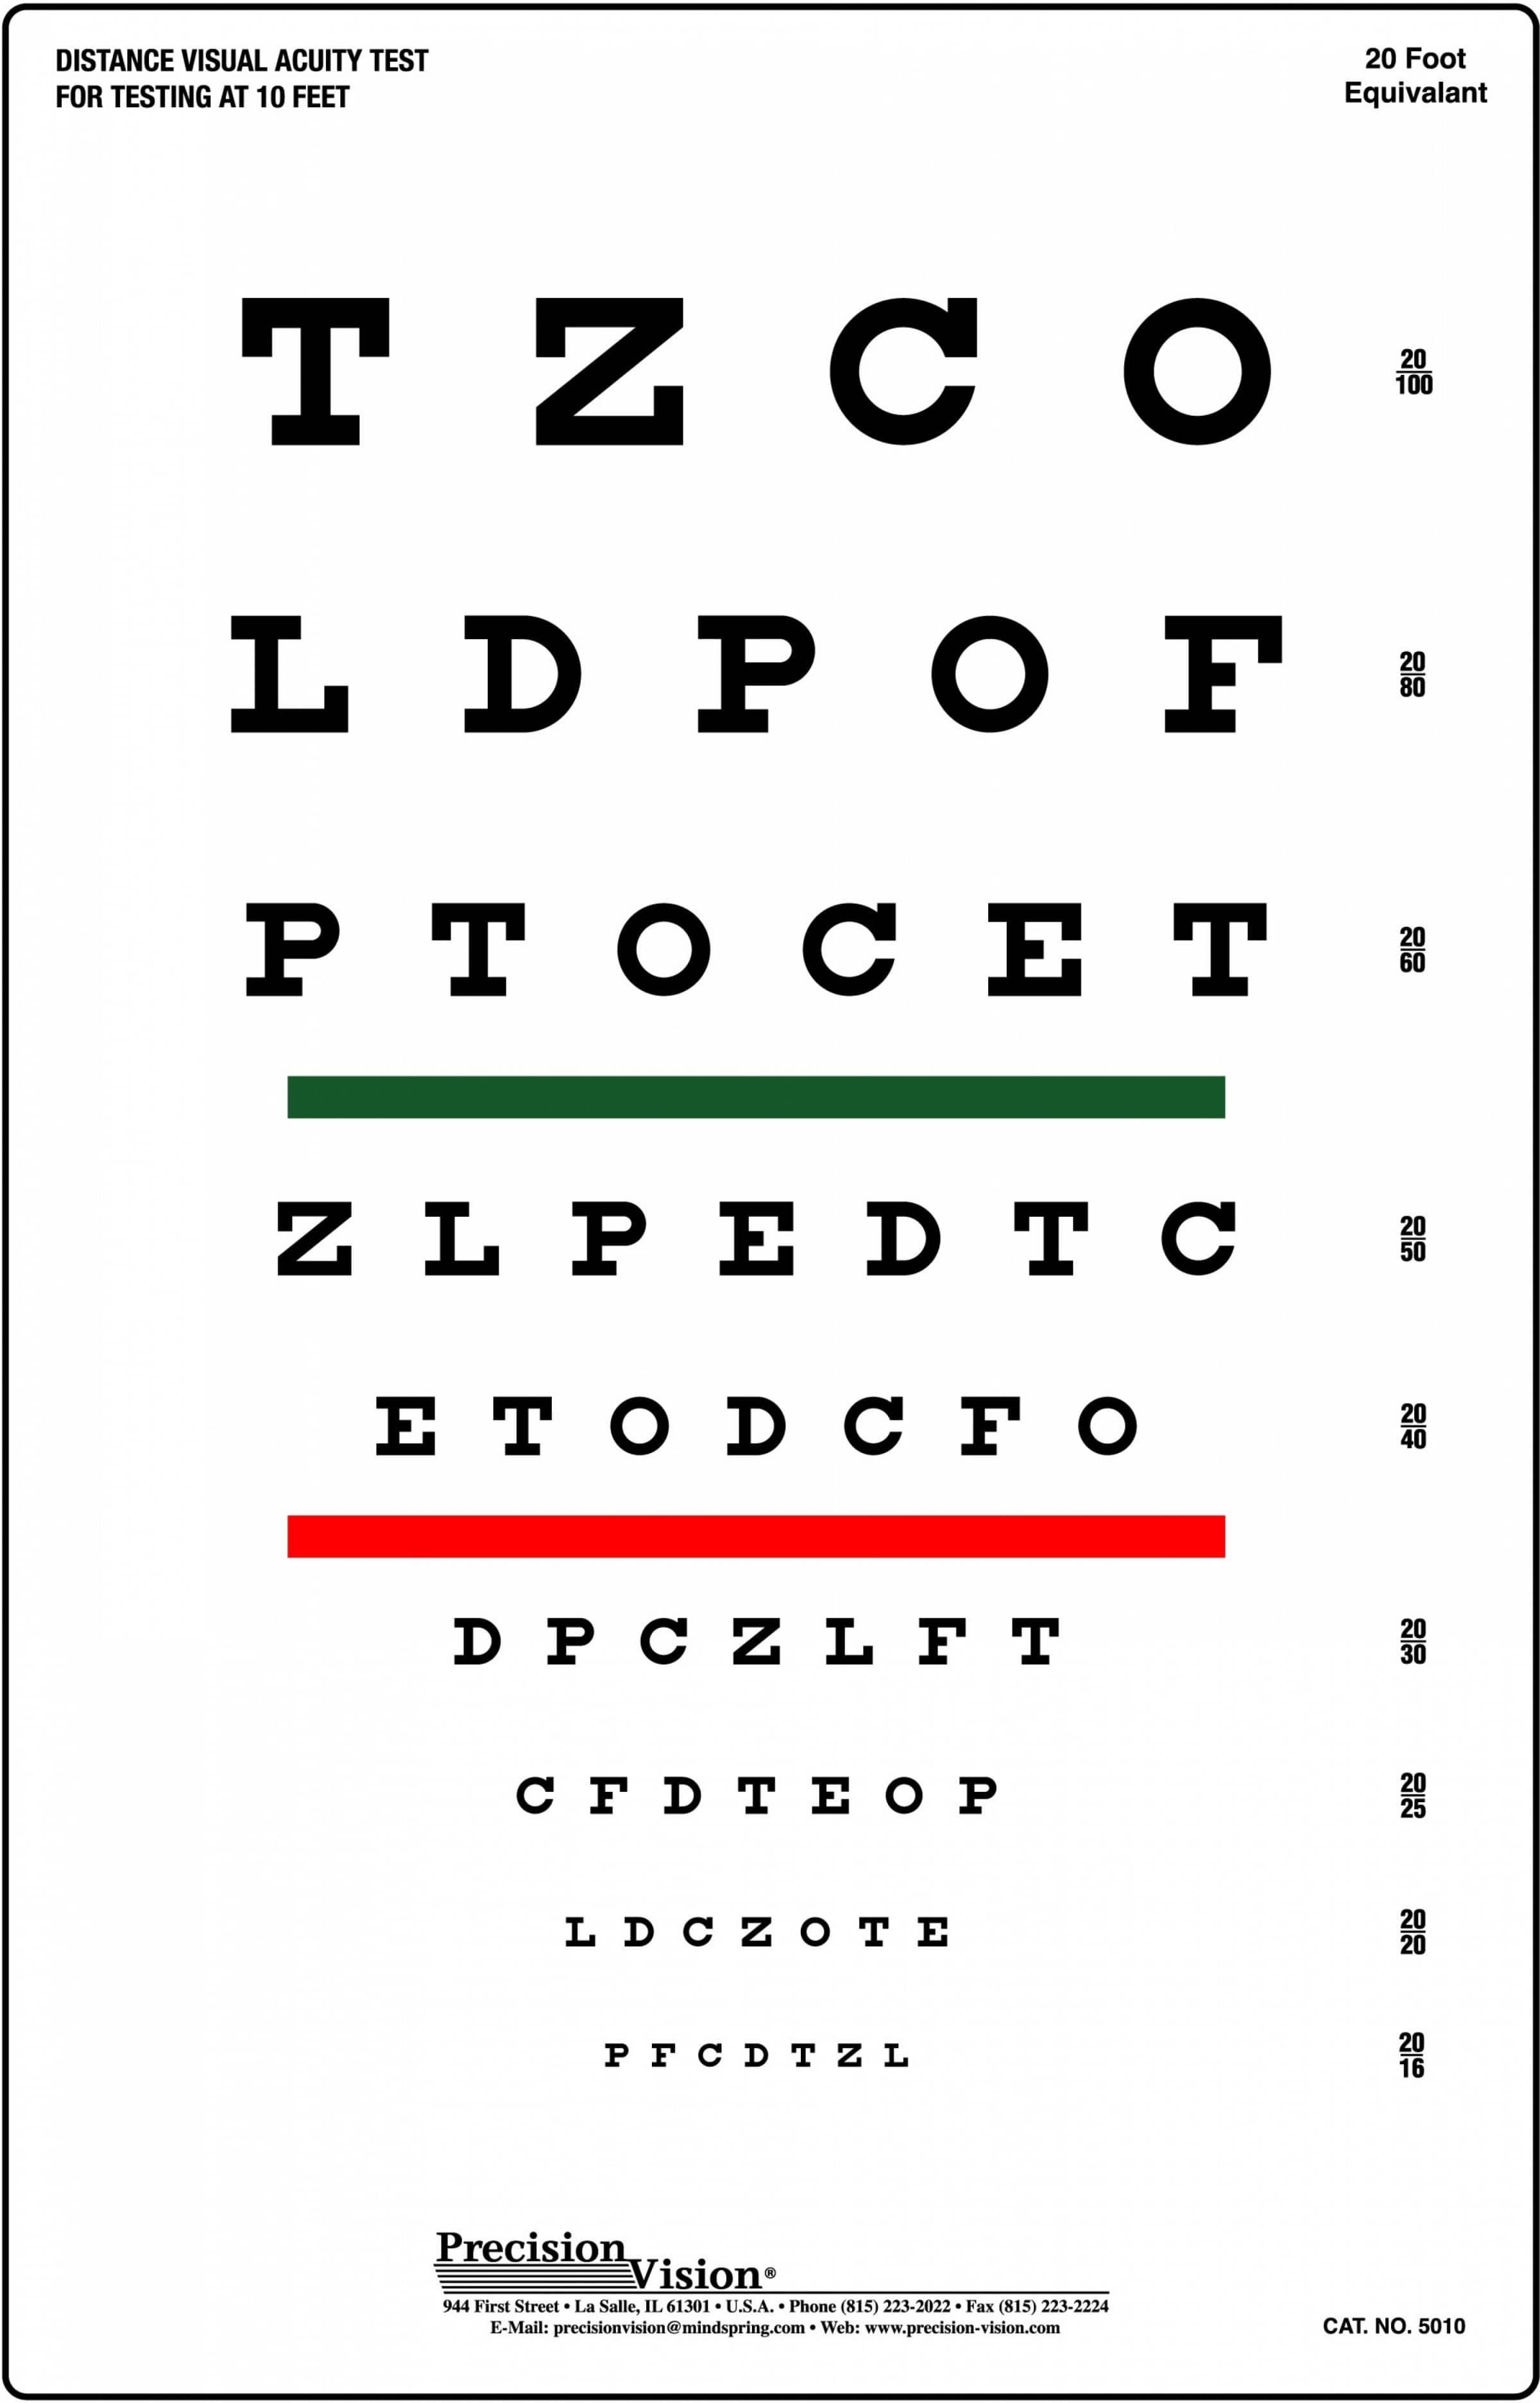 Snellen chart red and green bar visual acuity test precision vision